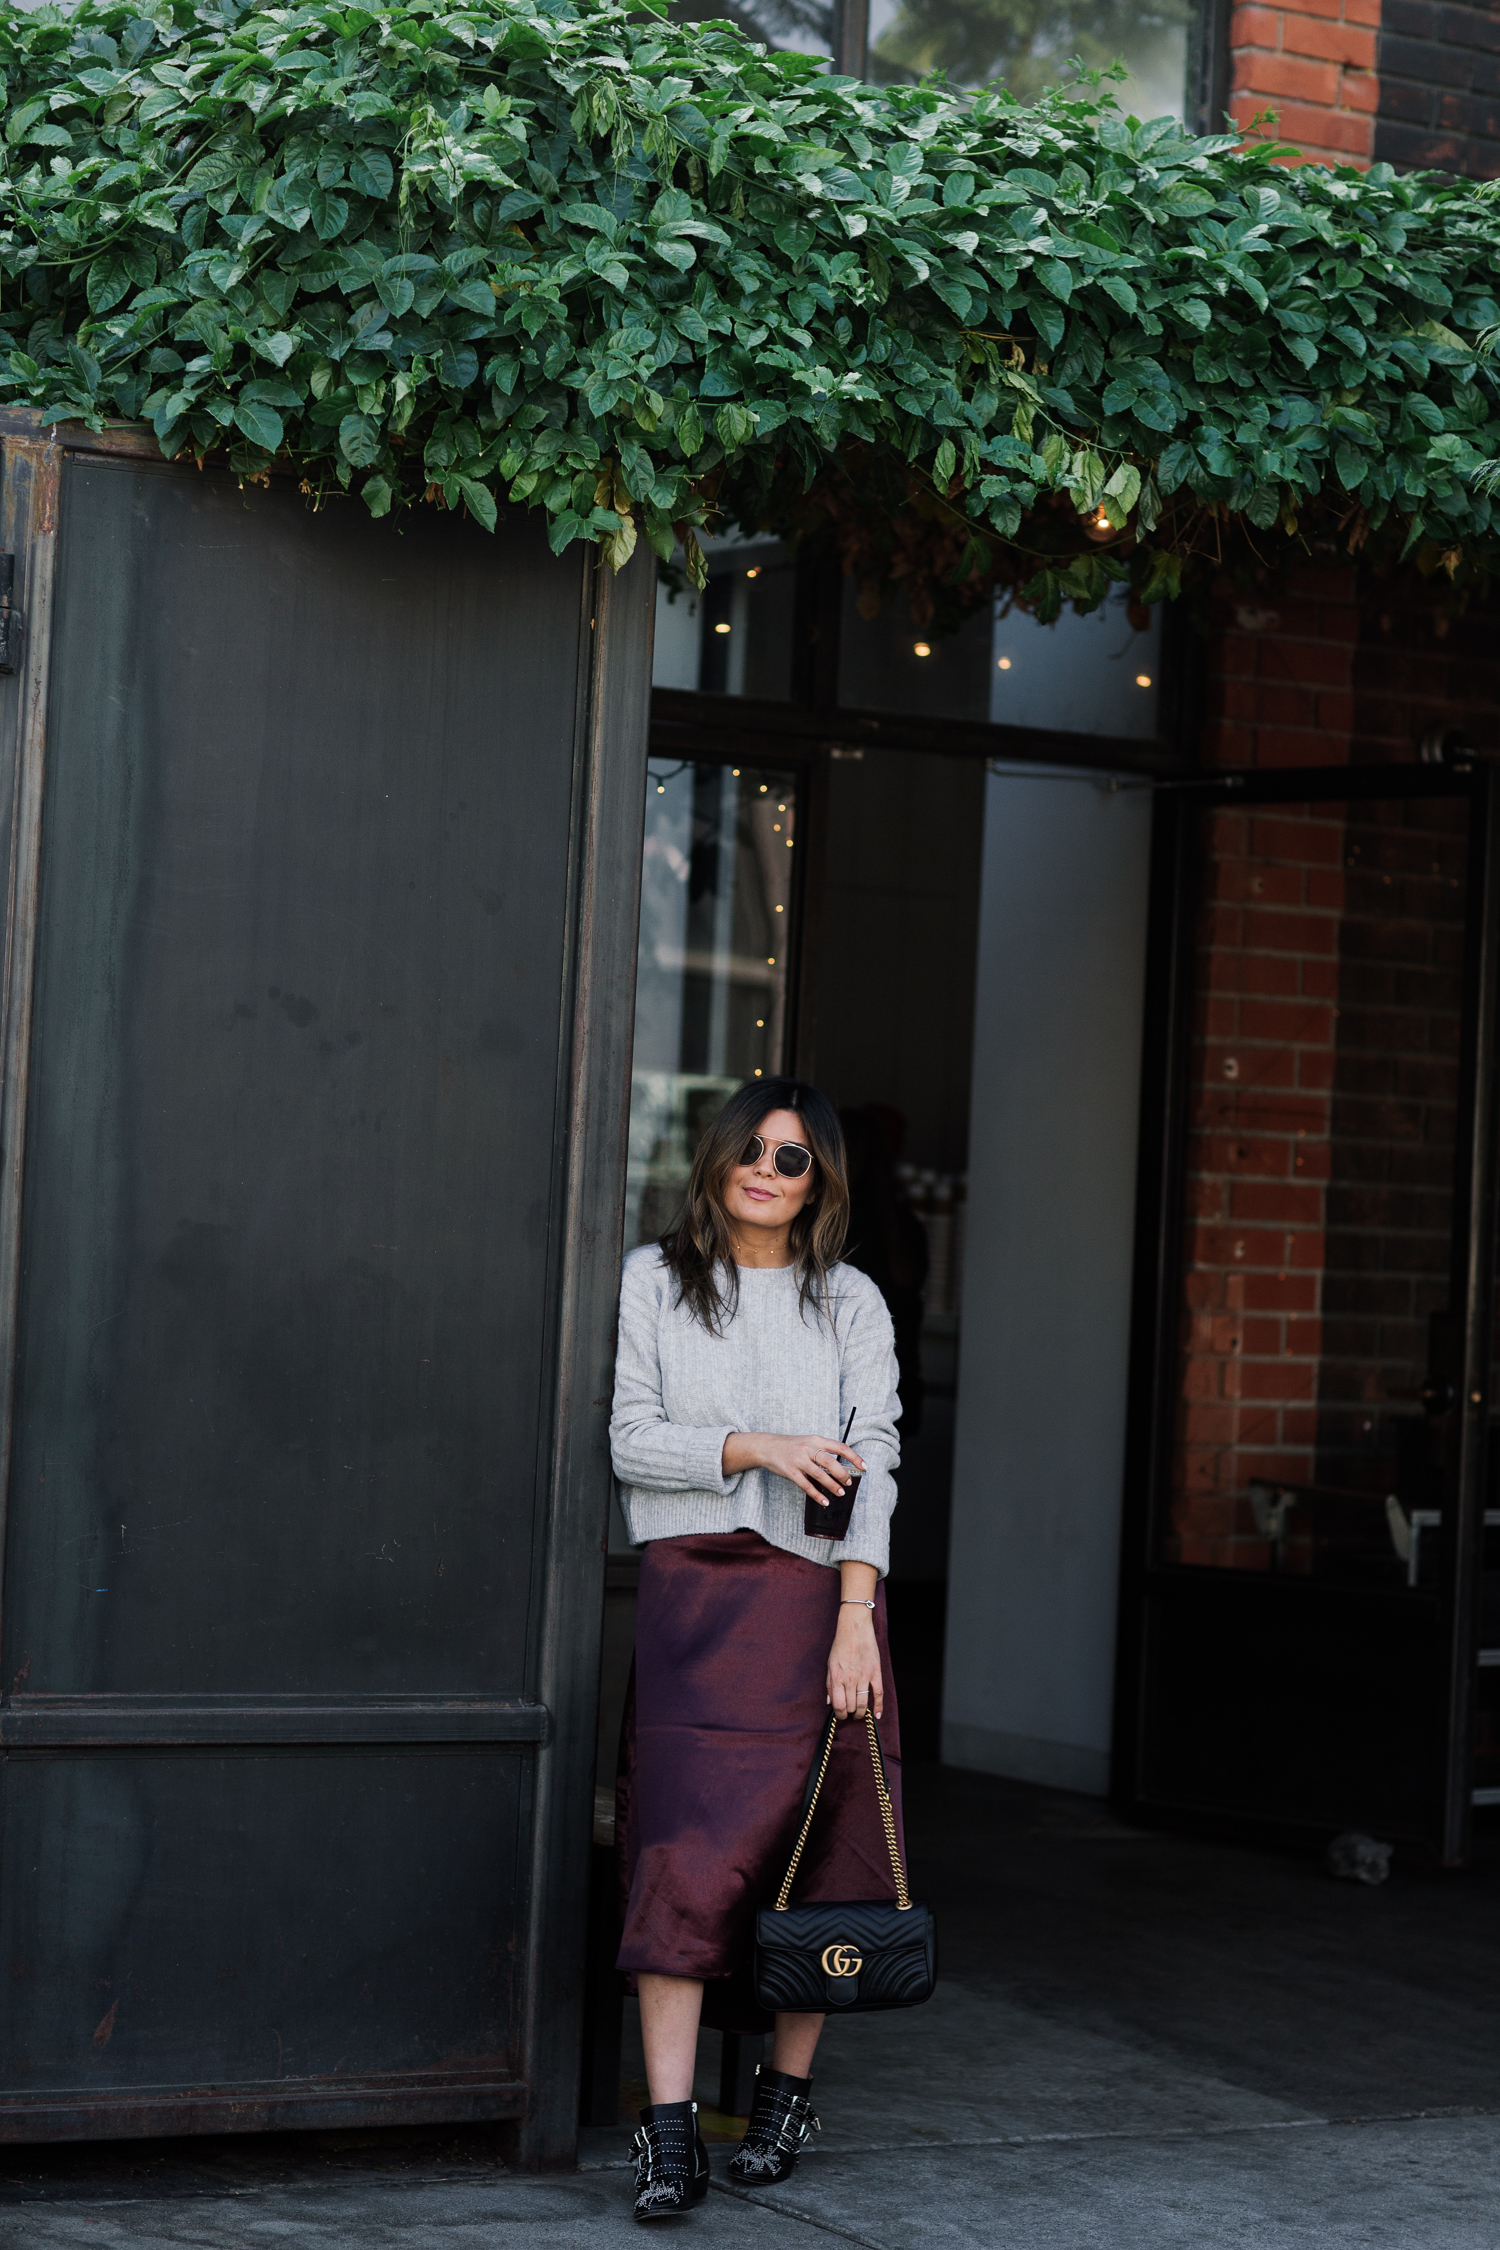 Blogger Sara Azani of Style MBA, a stylish petite brunette woman with blonde highlights holding iced coffee wears a satin plum skirt and ribbed sweater from H&M, Chloé Susan Studded Buckle Boots, Ray-Ban Caravan Aviator Sunglasses, and a black leather Gucci shoulder bag outside of a charming café.